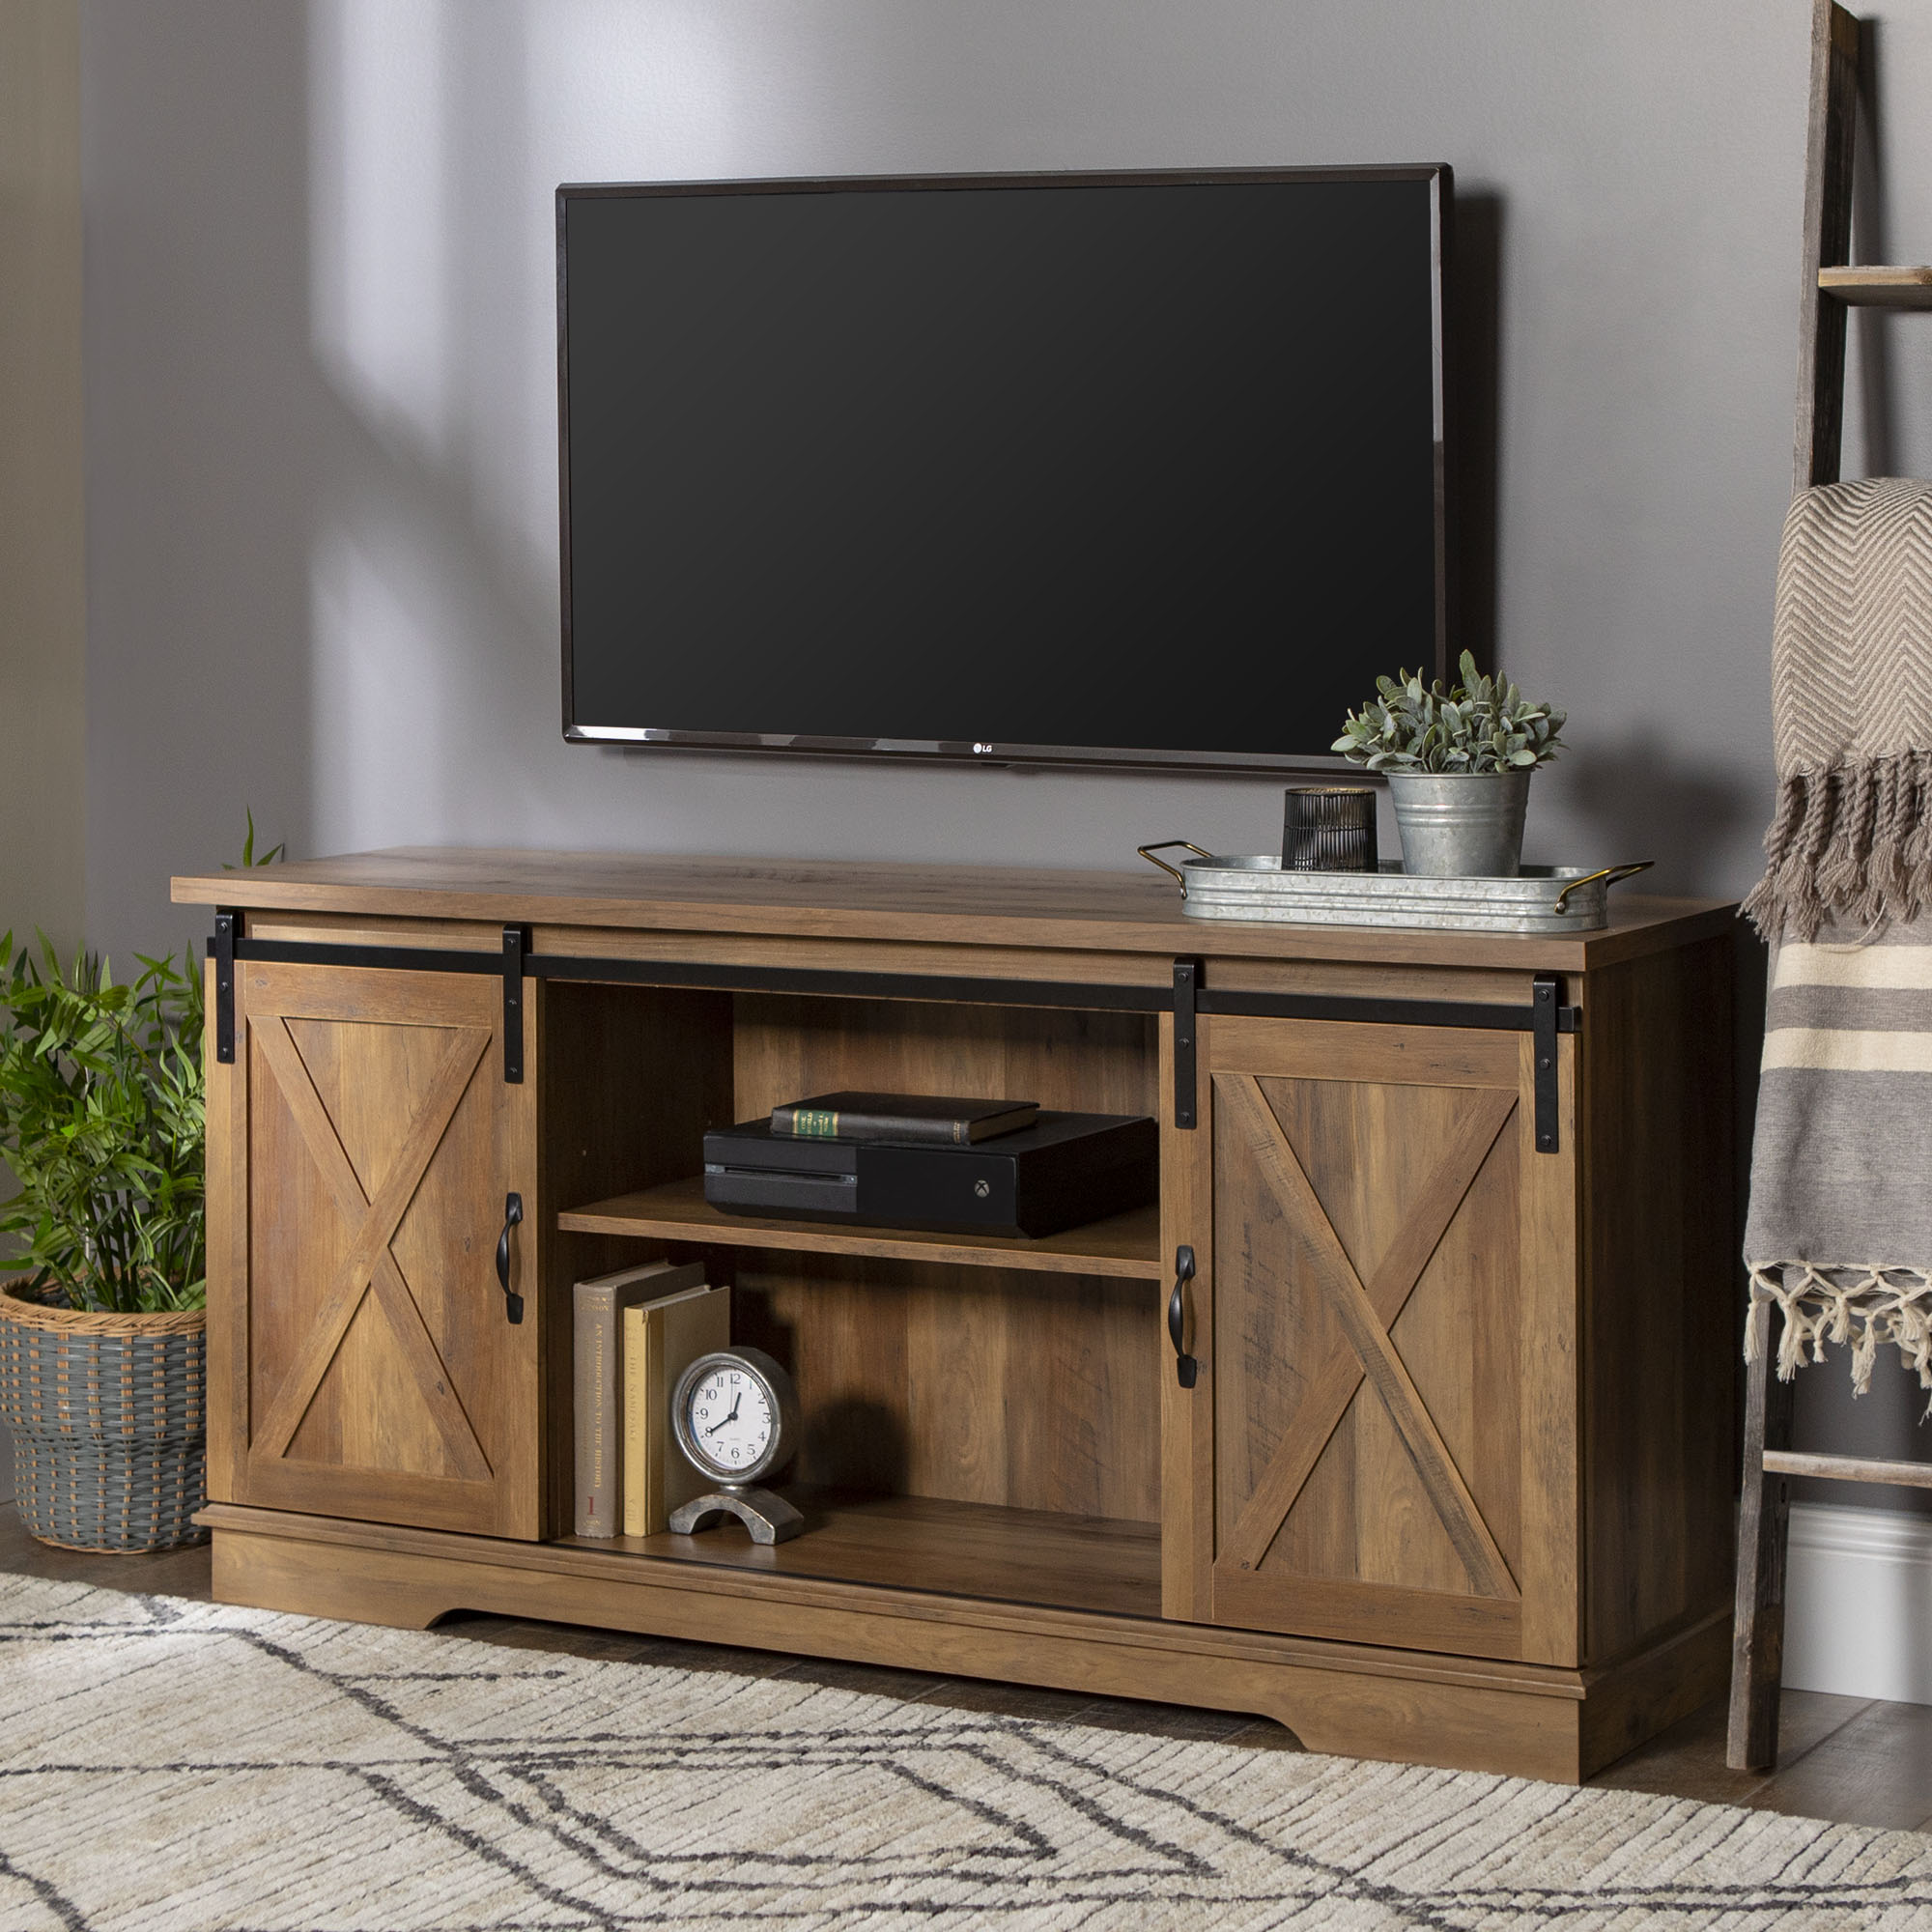 Details About Rustic Tv Stand Console Up To 65 Reclaimed Barn Door Wood Entertainment Center